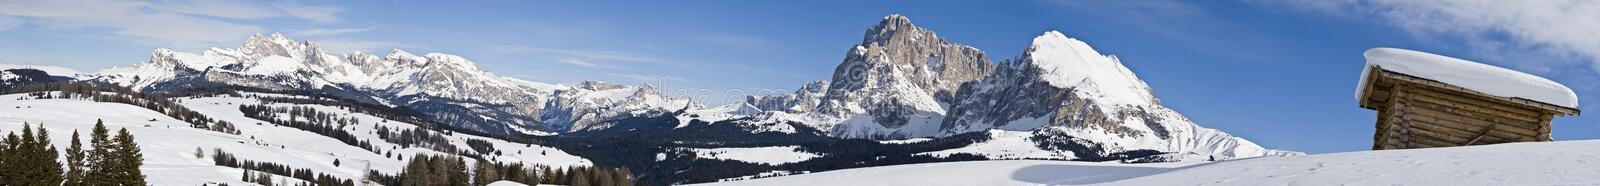 Download Mountain alps panorama stock image. Image of white, cloud - 11980505